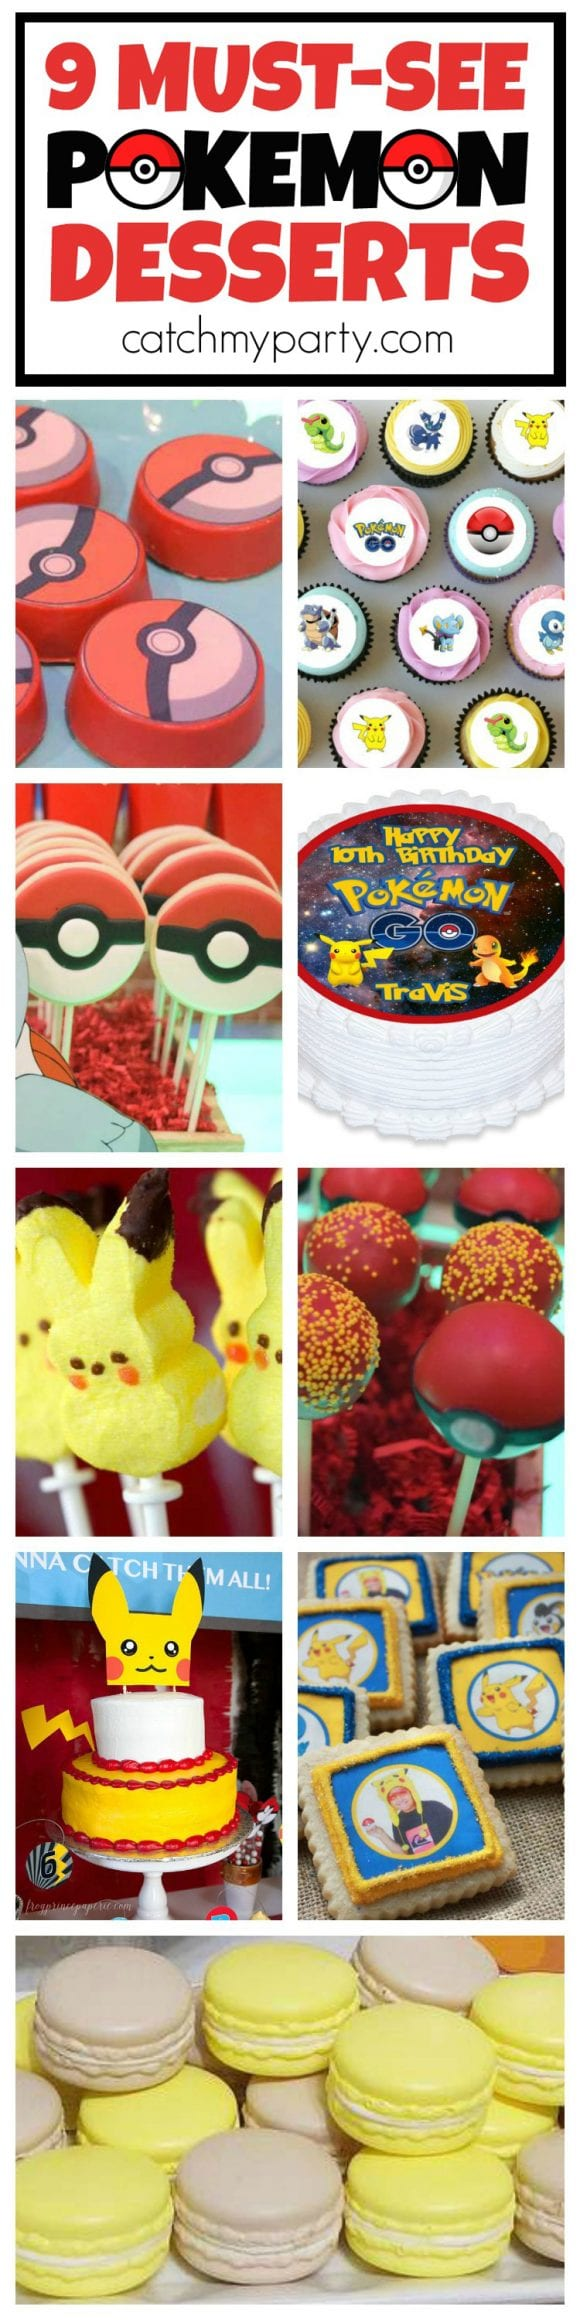 9 Must-See Pokemon Desserts | CatchMyParty.com